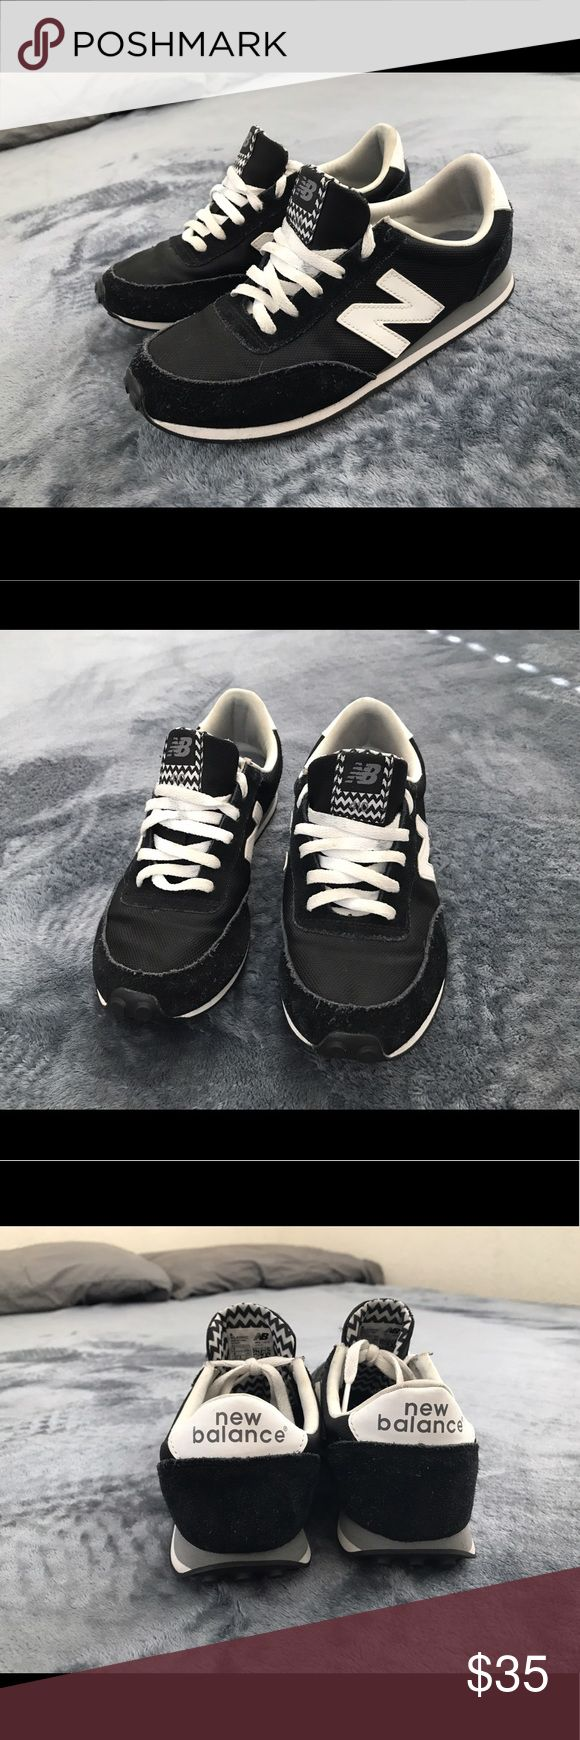 New Balance 410 New Balance black and white sneakers in very good condition. Only worn a handful of times. Inner soles are removable. True to size New Balance Shoes Sneakers